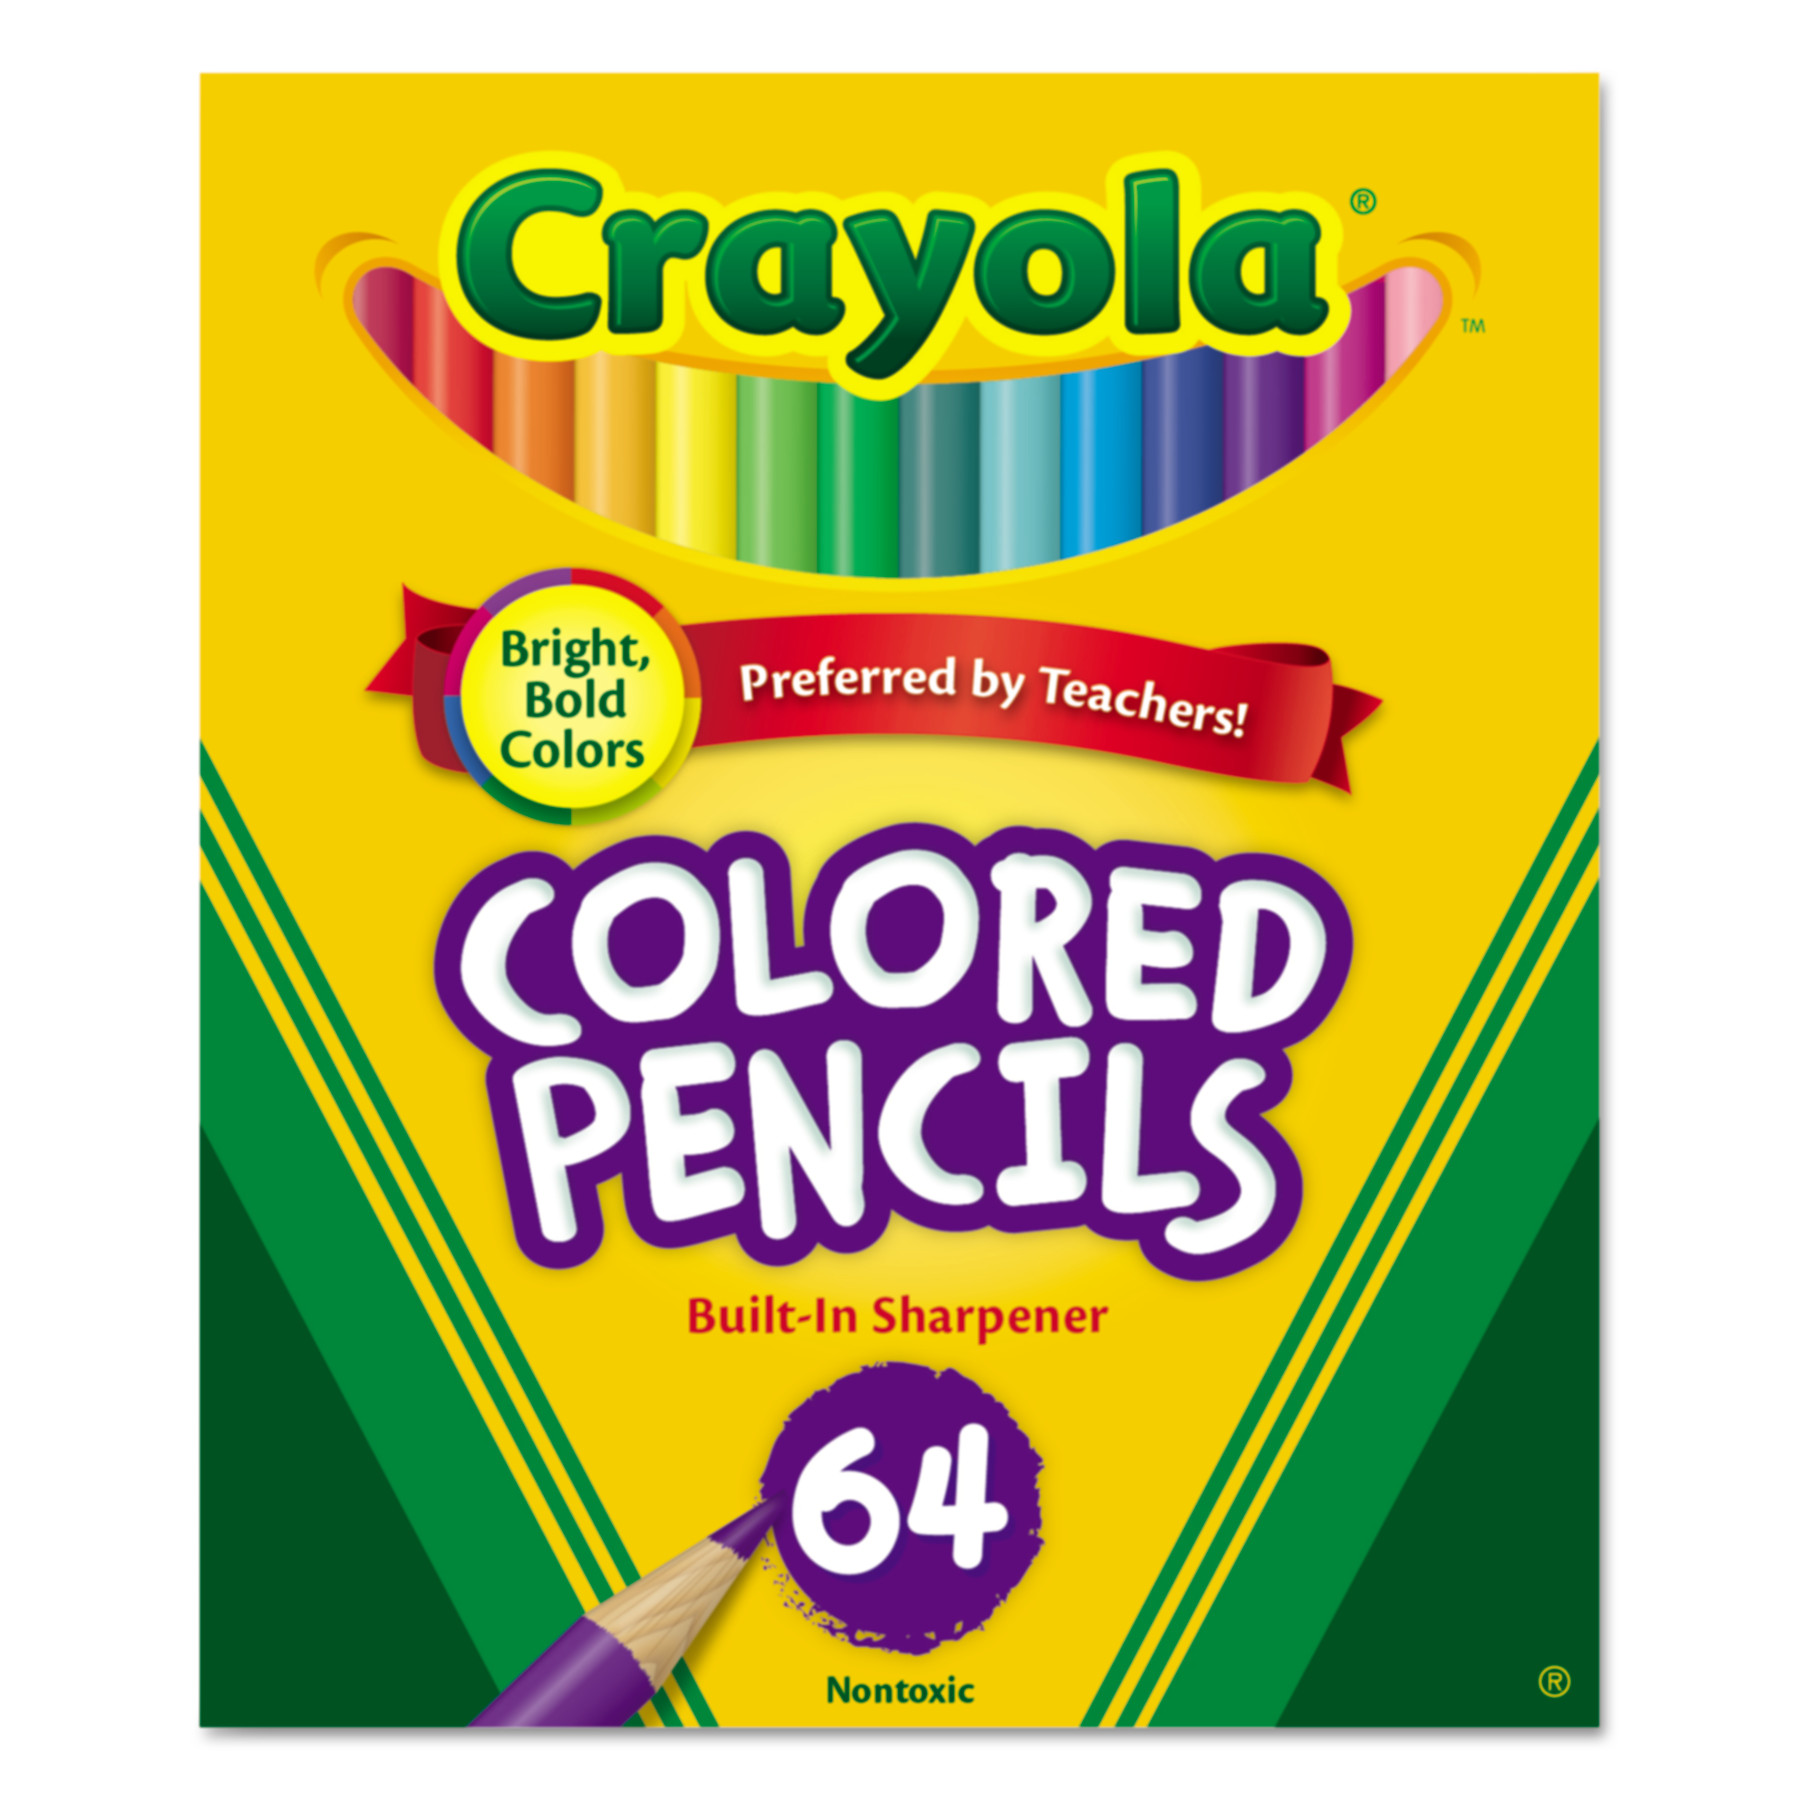 Crayola 64 Count Colored Pencils